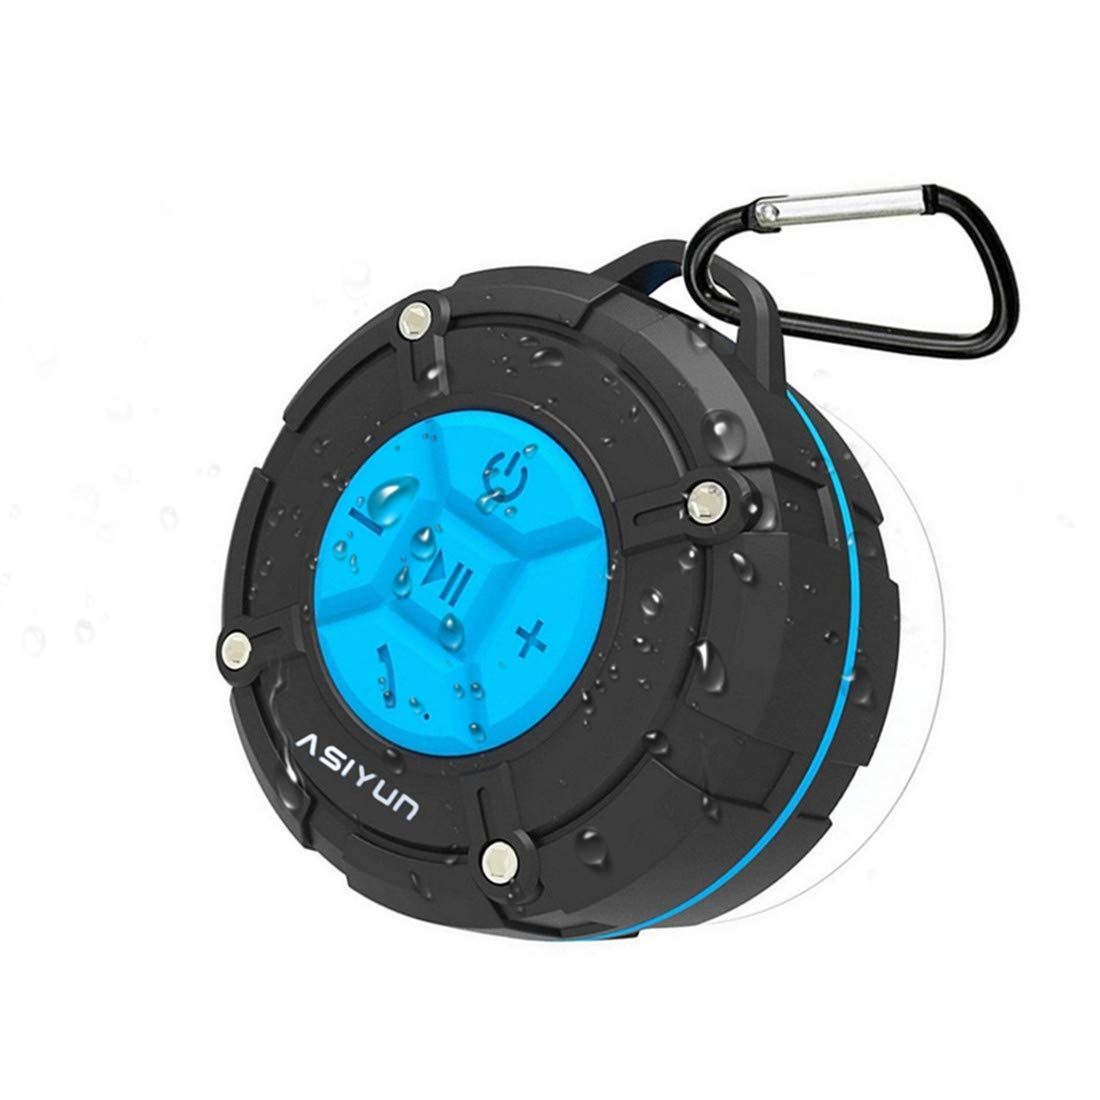 ASIYUN Shower Radios, Waterproof Speaker with Louder HD Sound, 4H Playtime Portable Wireless Speaker with Suction Cup & Sturdy Hook, Built in Mic, for Bathroom, Pool, Beach, Outdoor (Blue) by ASIYUN